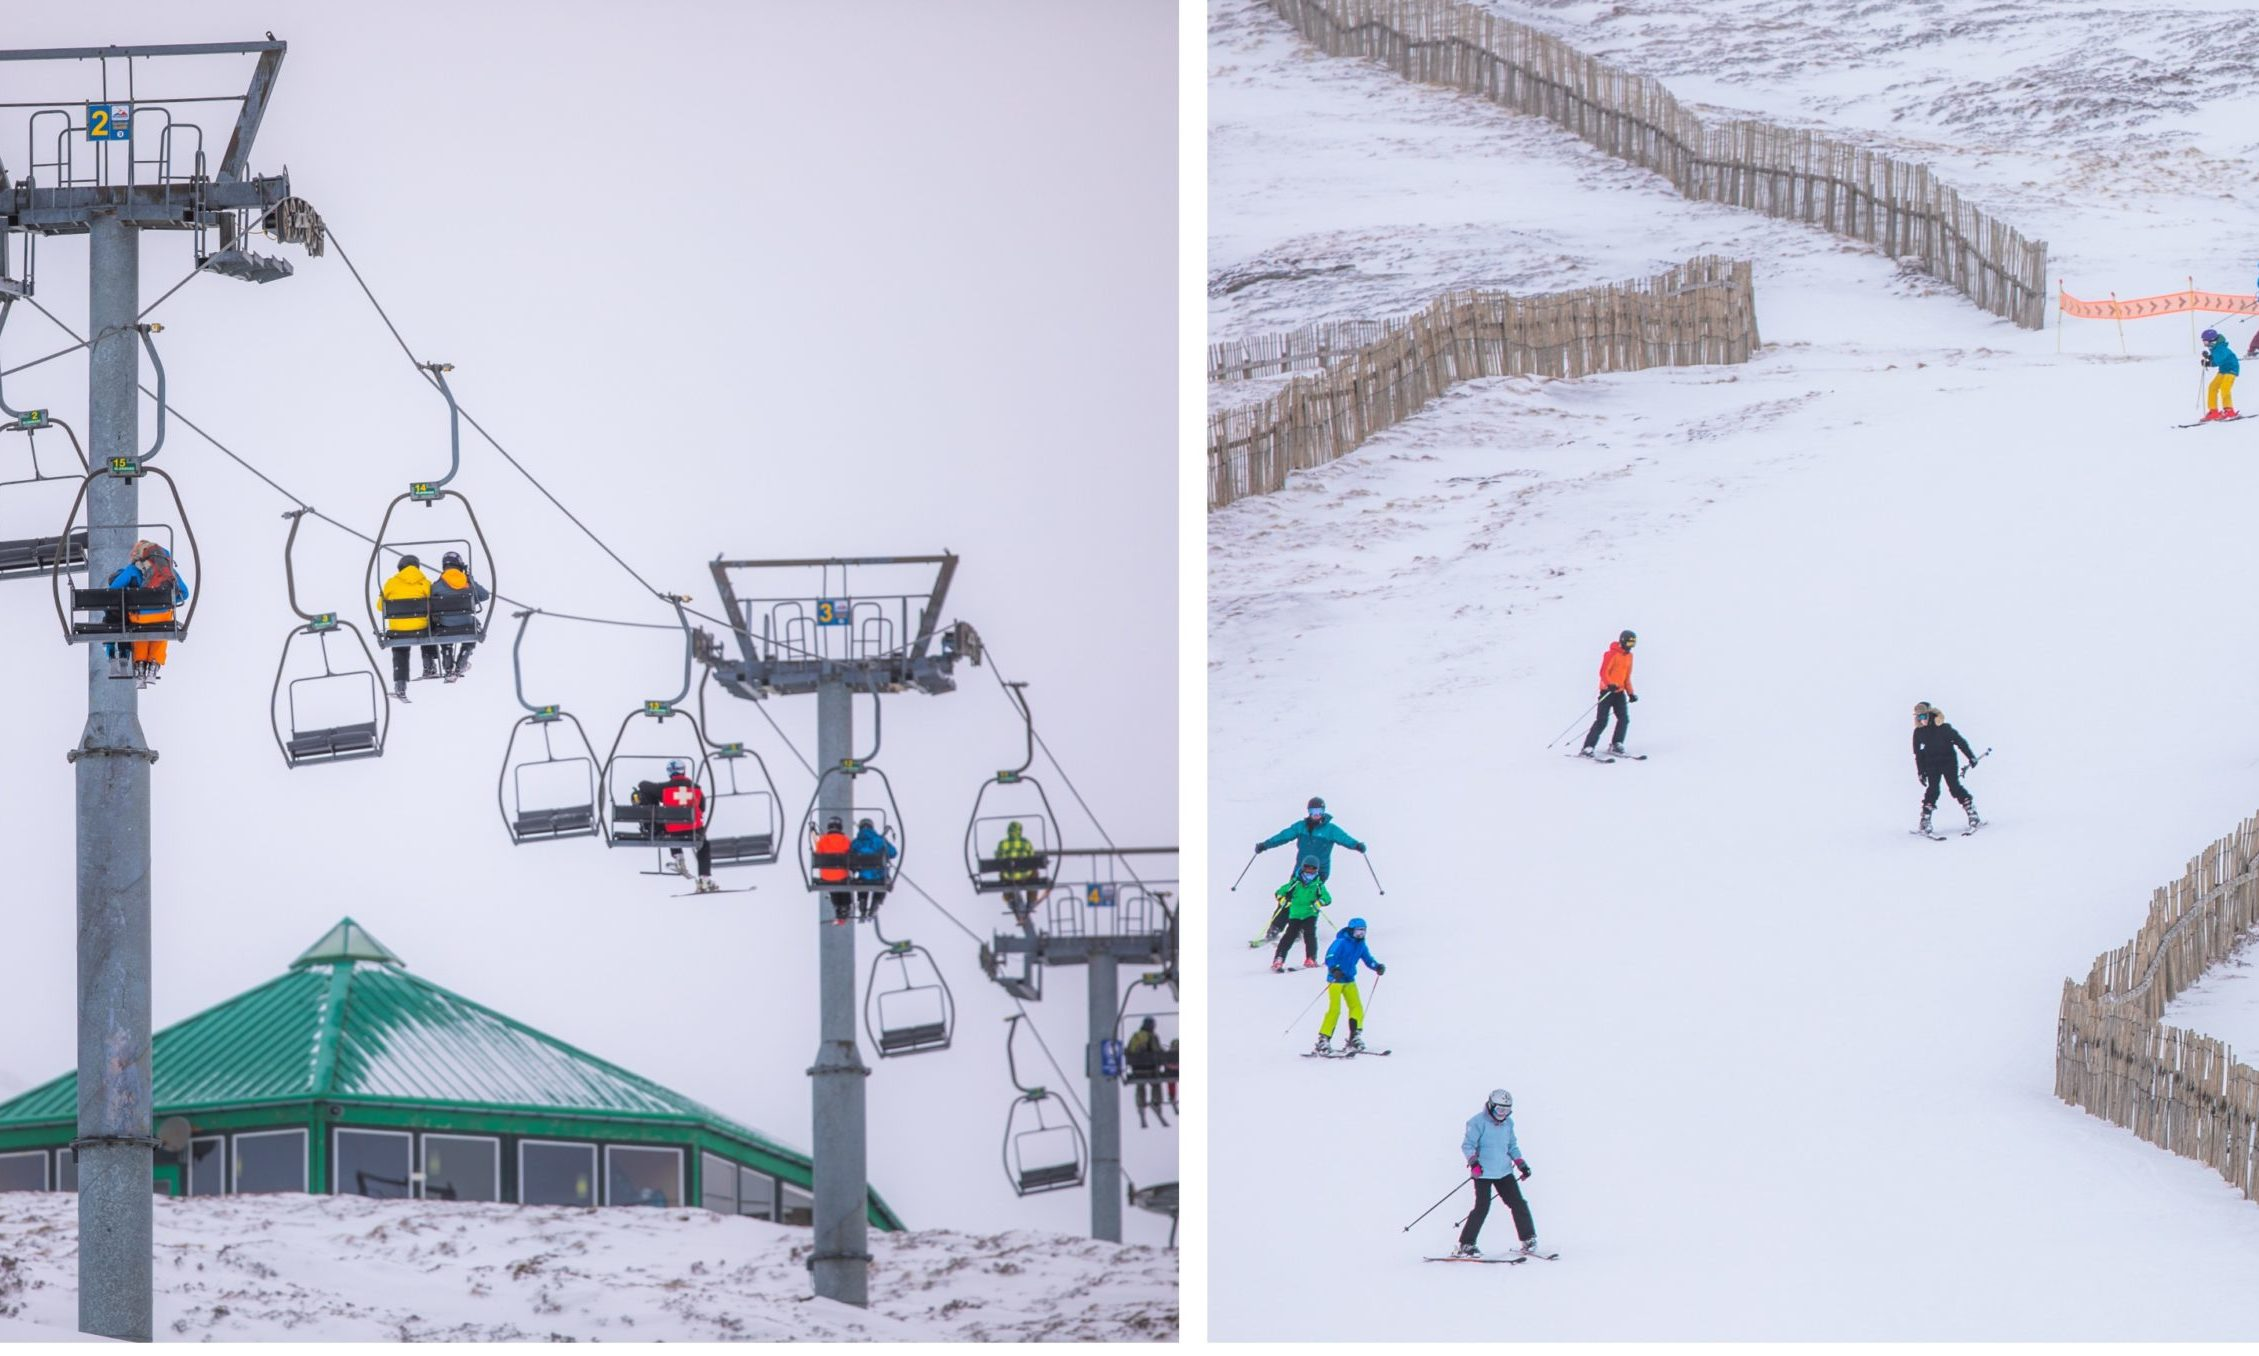 Glenshee Ski Centre on Wednesday, February 19.